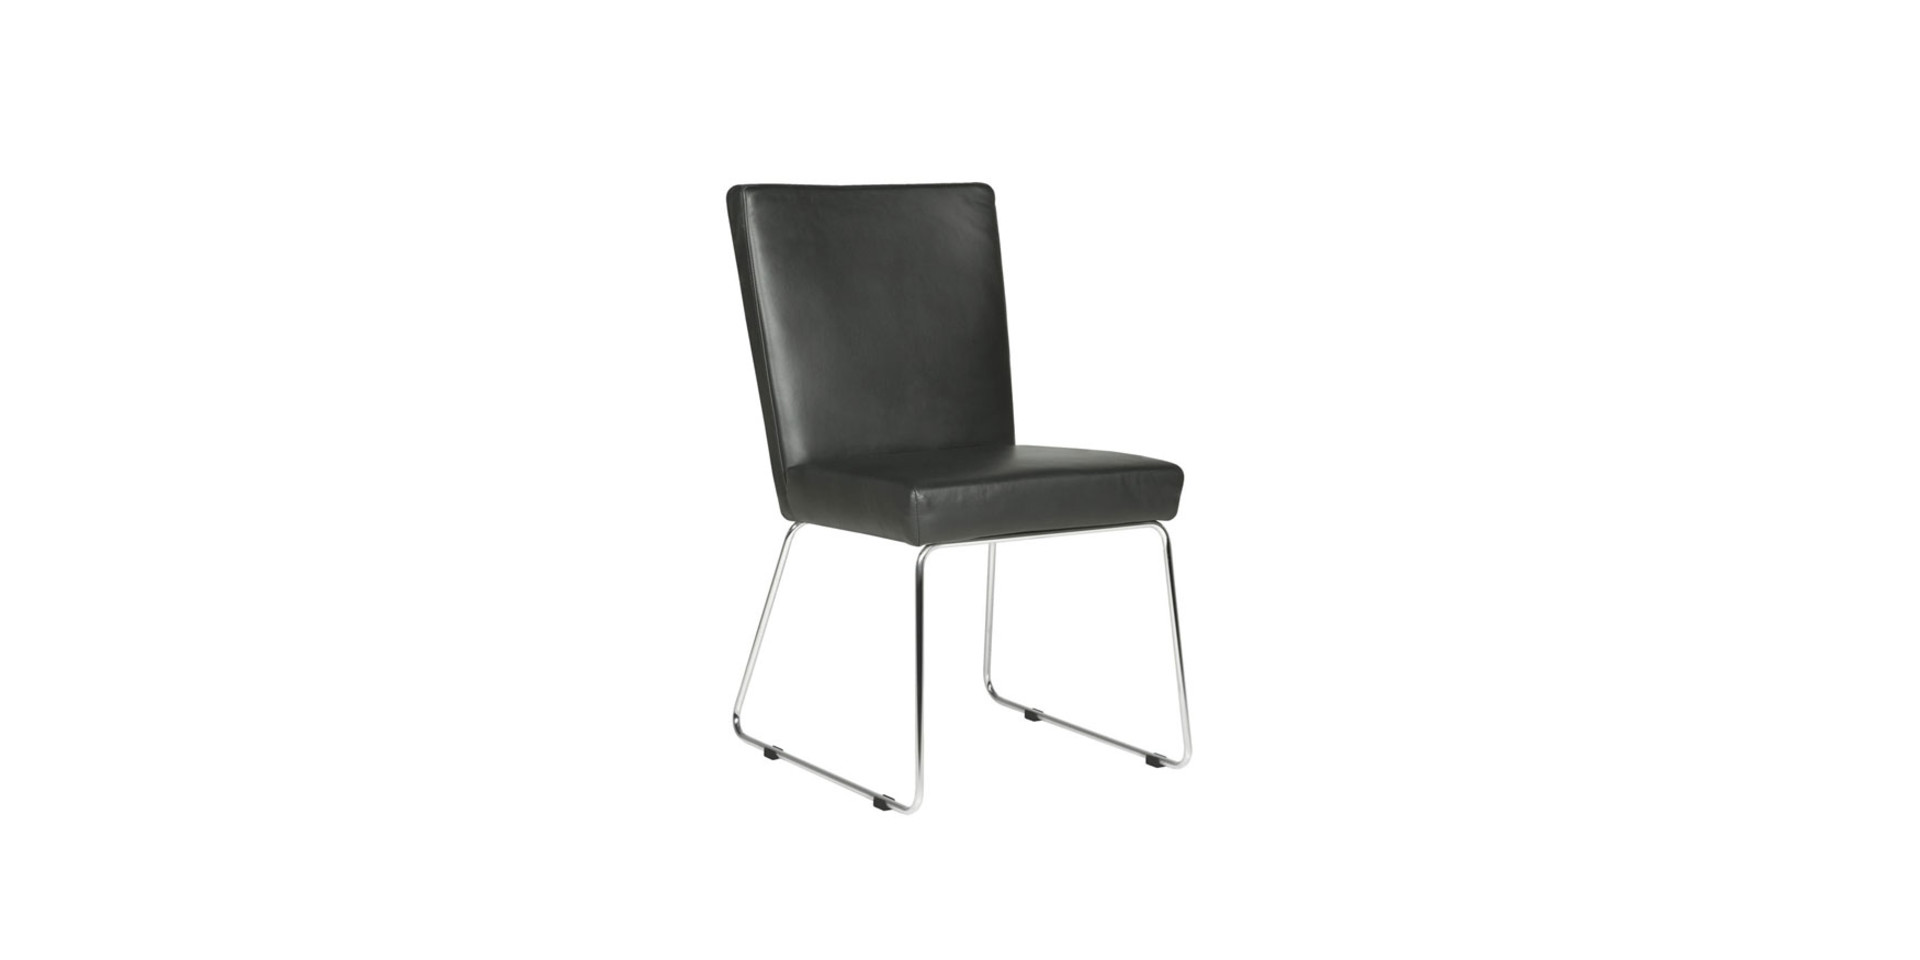 sits-clark-chaise-chair_oasi_black_2